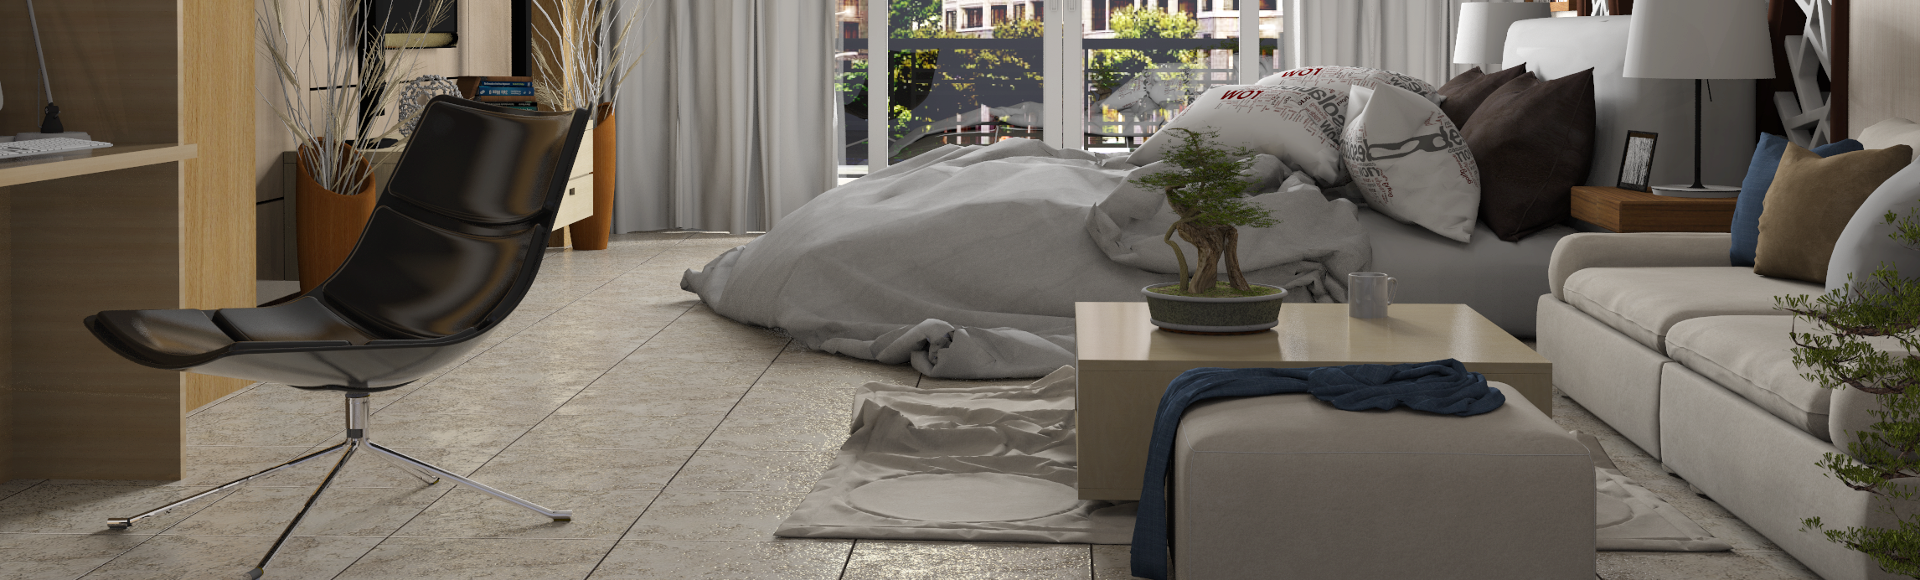 Photorealism for SketchUp™